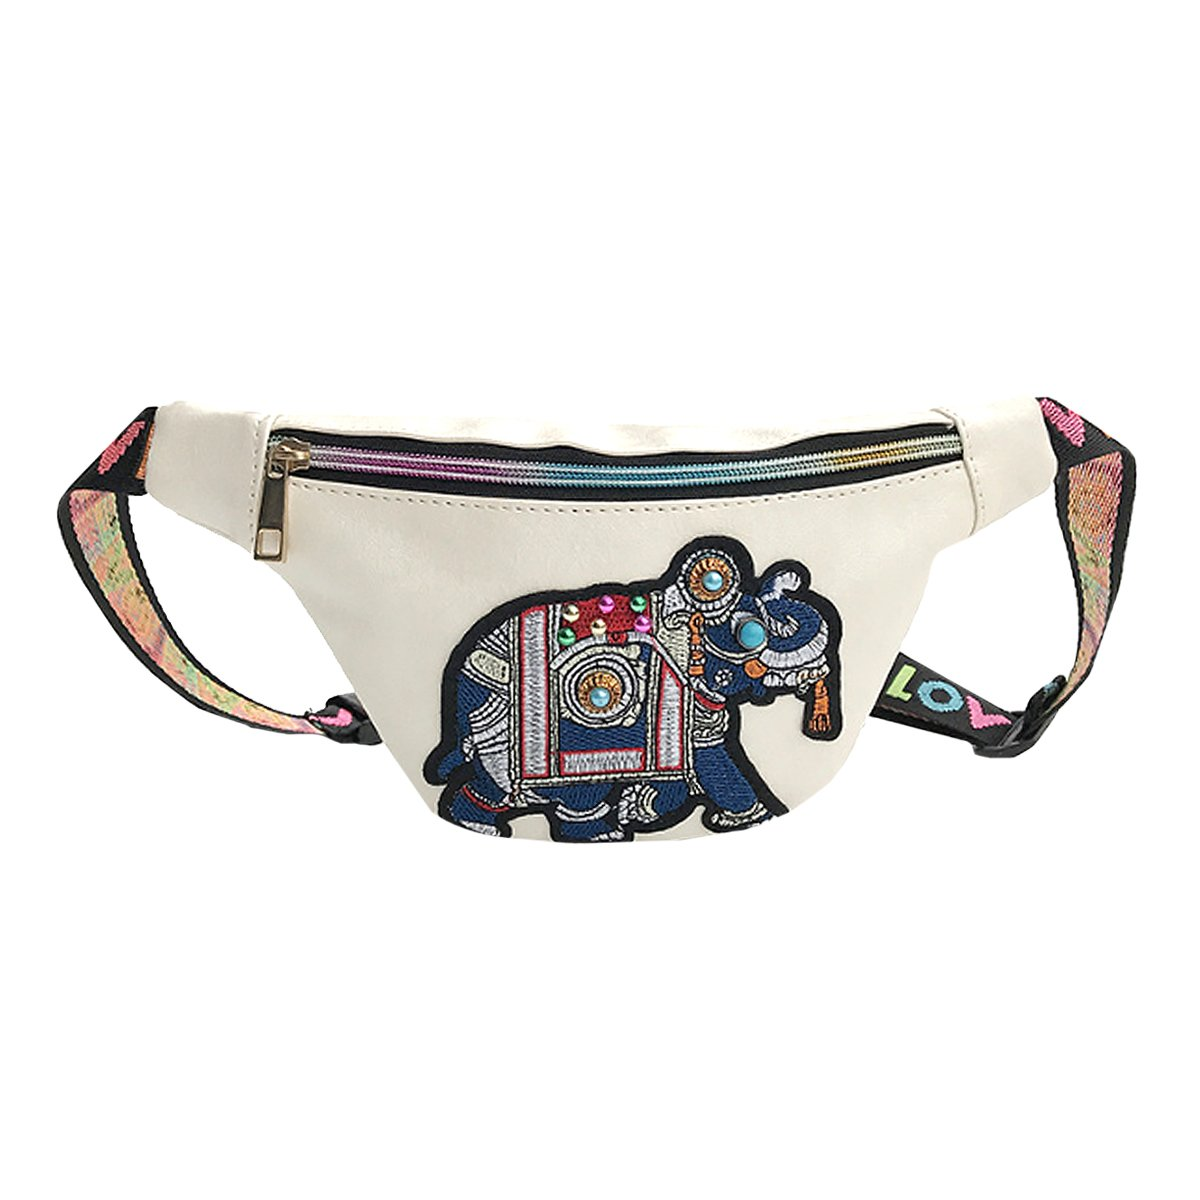 CLARA Women Fashion Elephant Embroidery Fanny Pack PU Leather Waist Bag Zipper Phone Pouch for Festivals and Raves White